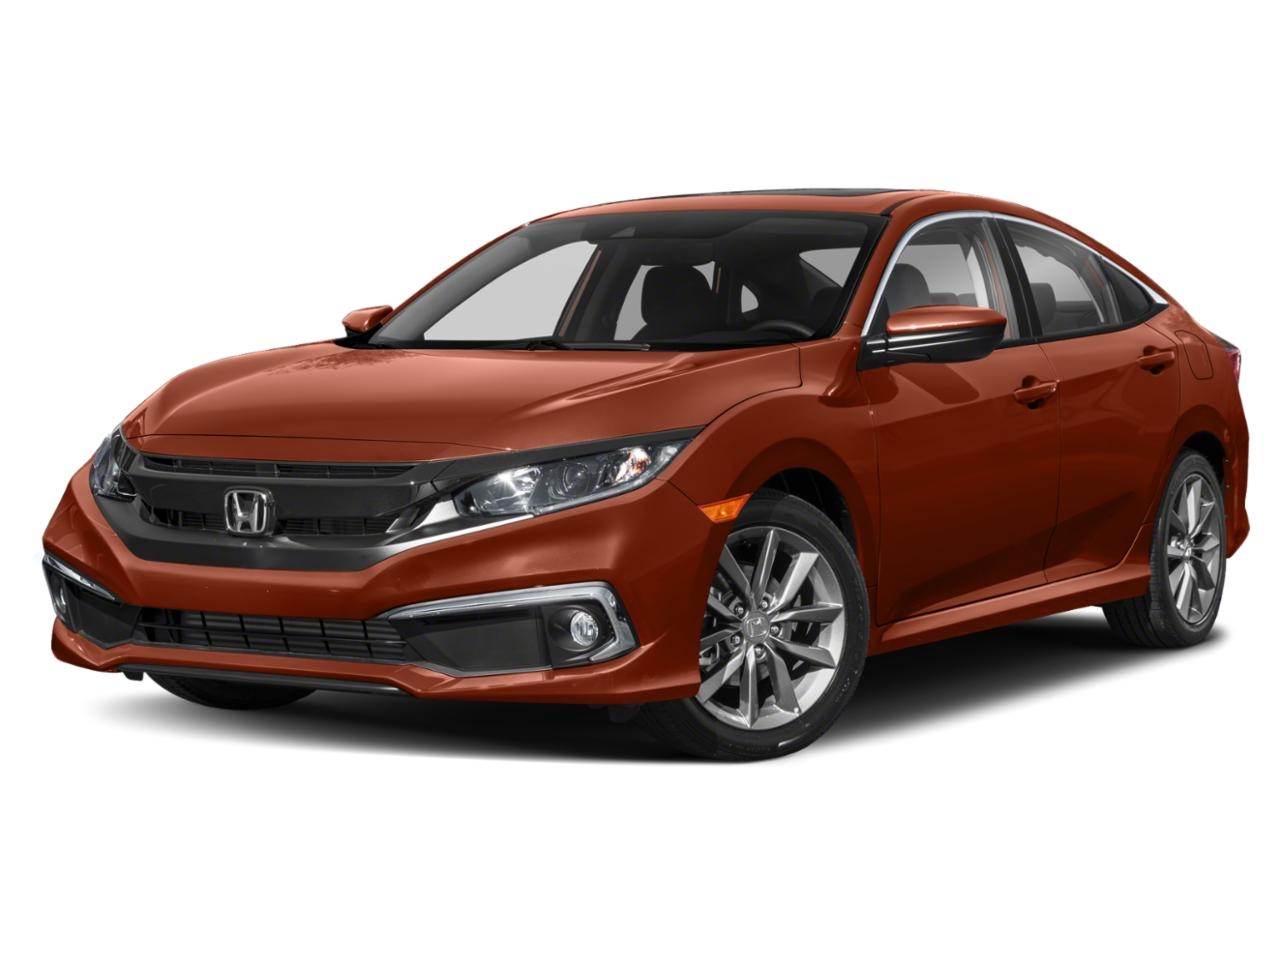 2019 Honda Civic Sedan Vehicle Photo in Oshkosh, WI 54904